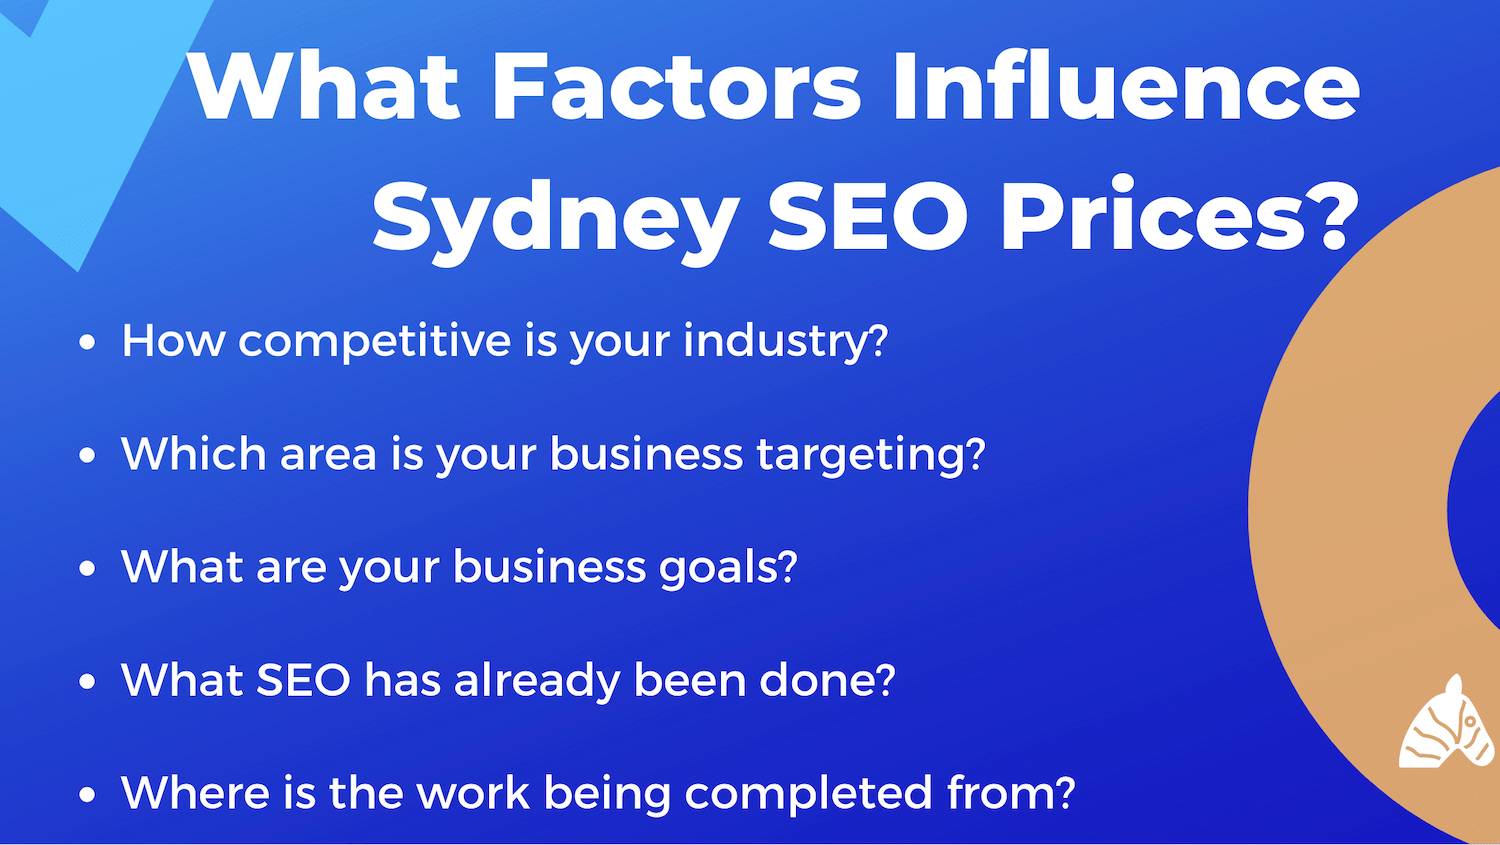 factors that influence the cost of SEO services